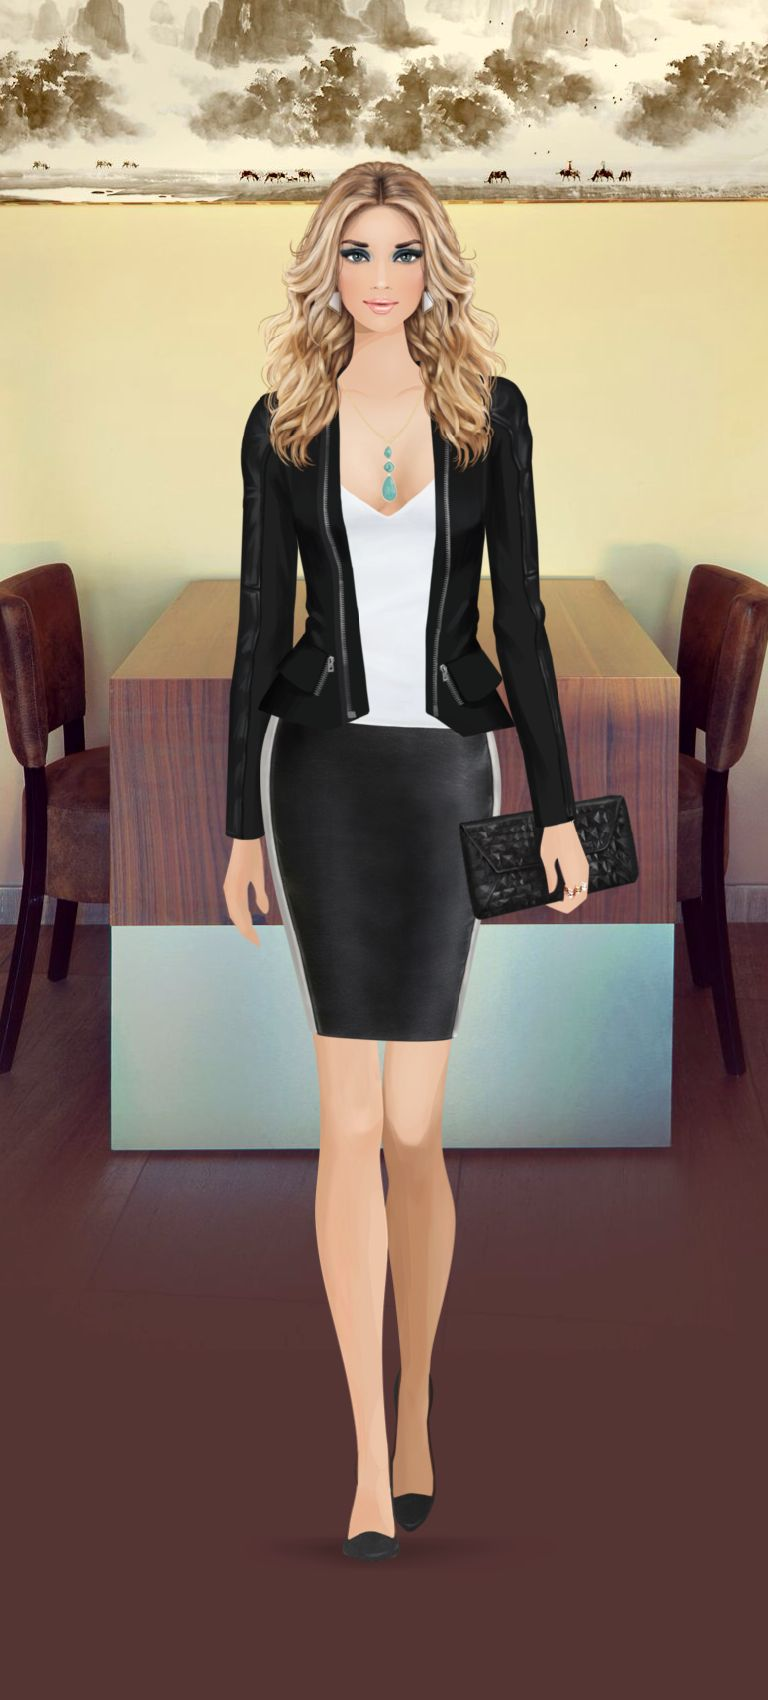 My Look - Speed Dating - .54 Bonus. I hope to win prize of